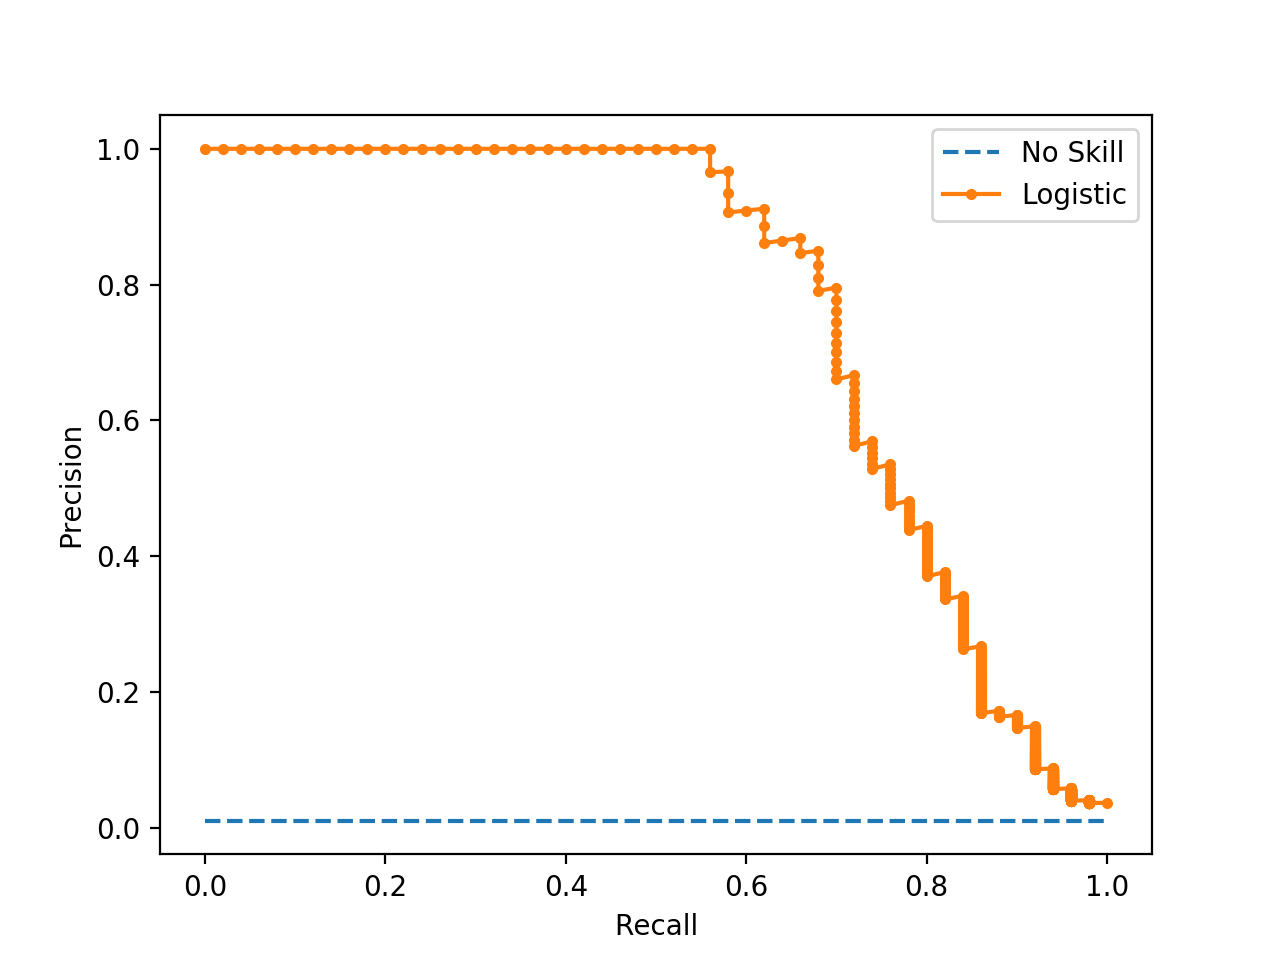 Precision-Recall Curve Line Plot for Logistic Regression Model for Imbalanced Classification